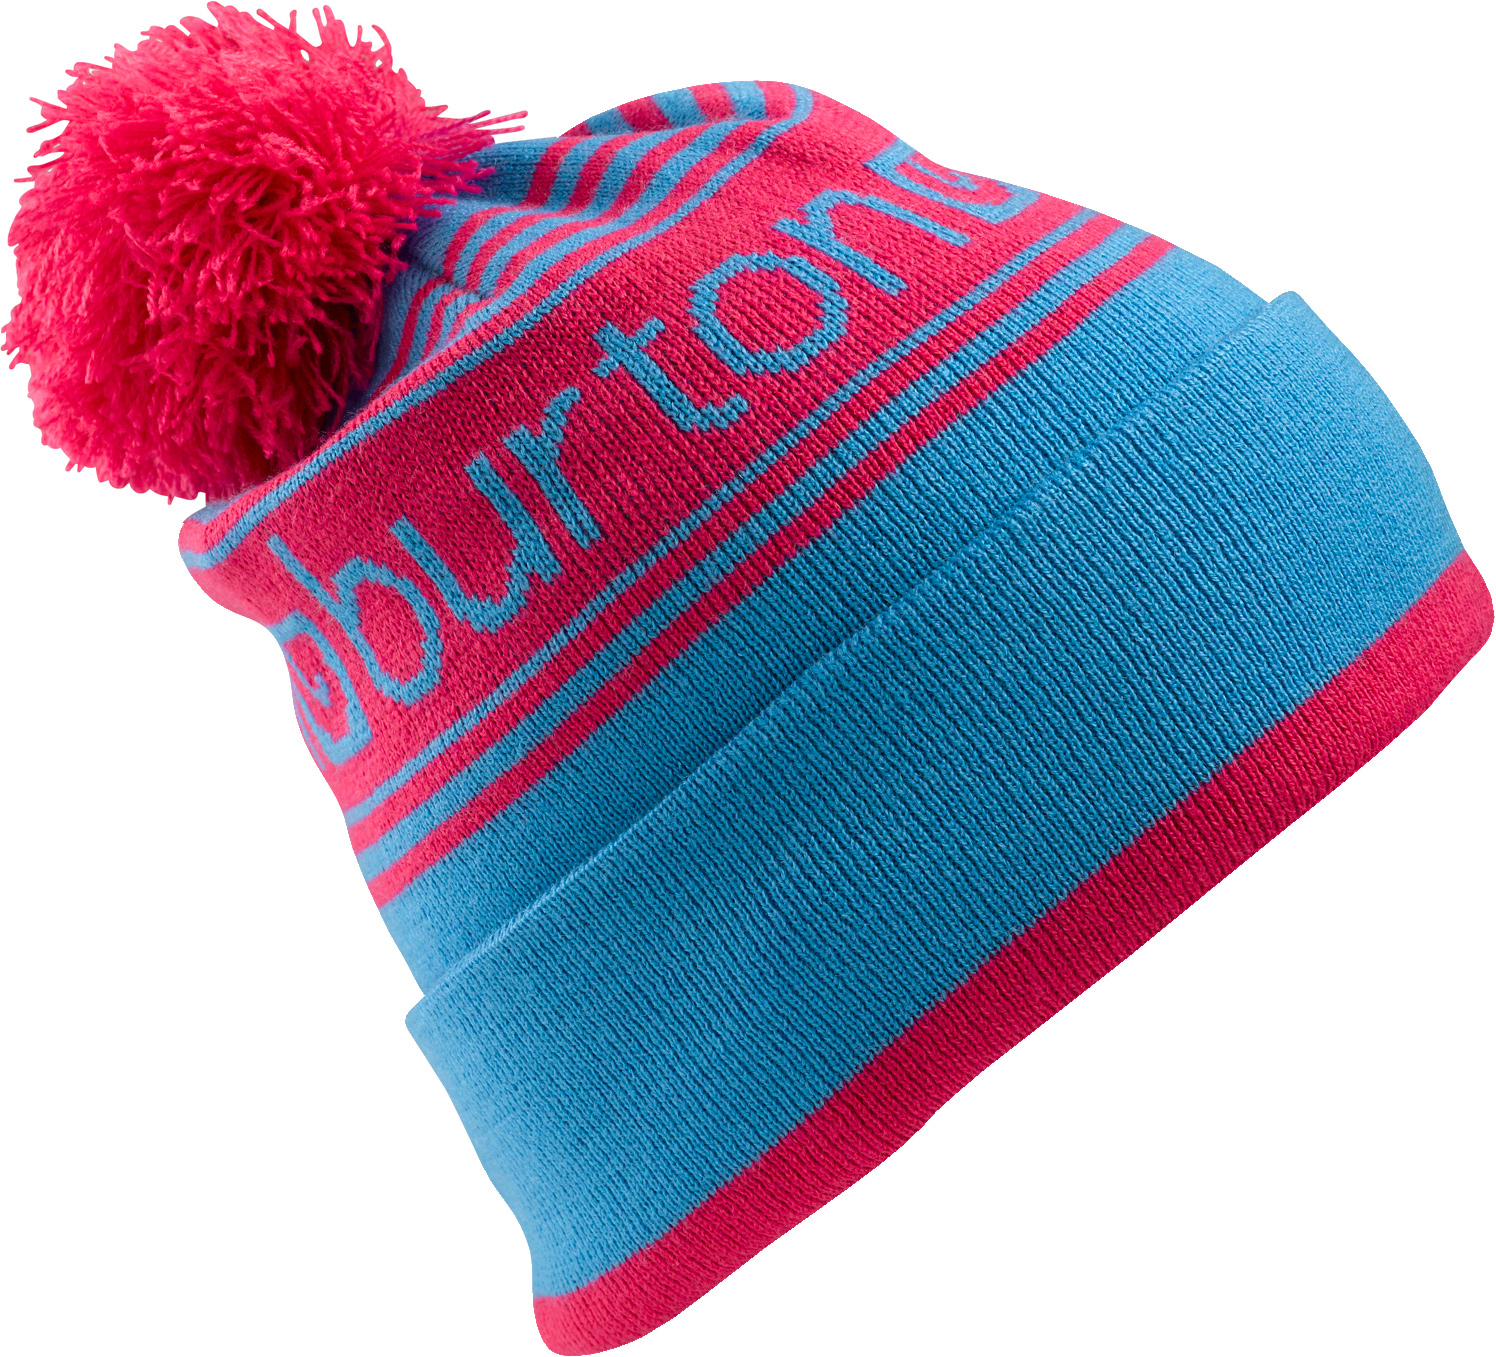 Snowboard Key Features of the Burton Trope Beanie: 100% Acrylic Logo Jacquard Fold Up with Skully Fit - $25.00